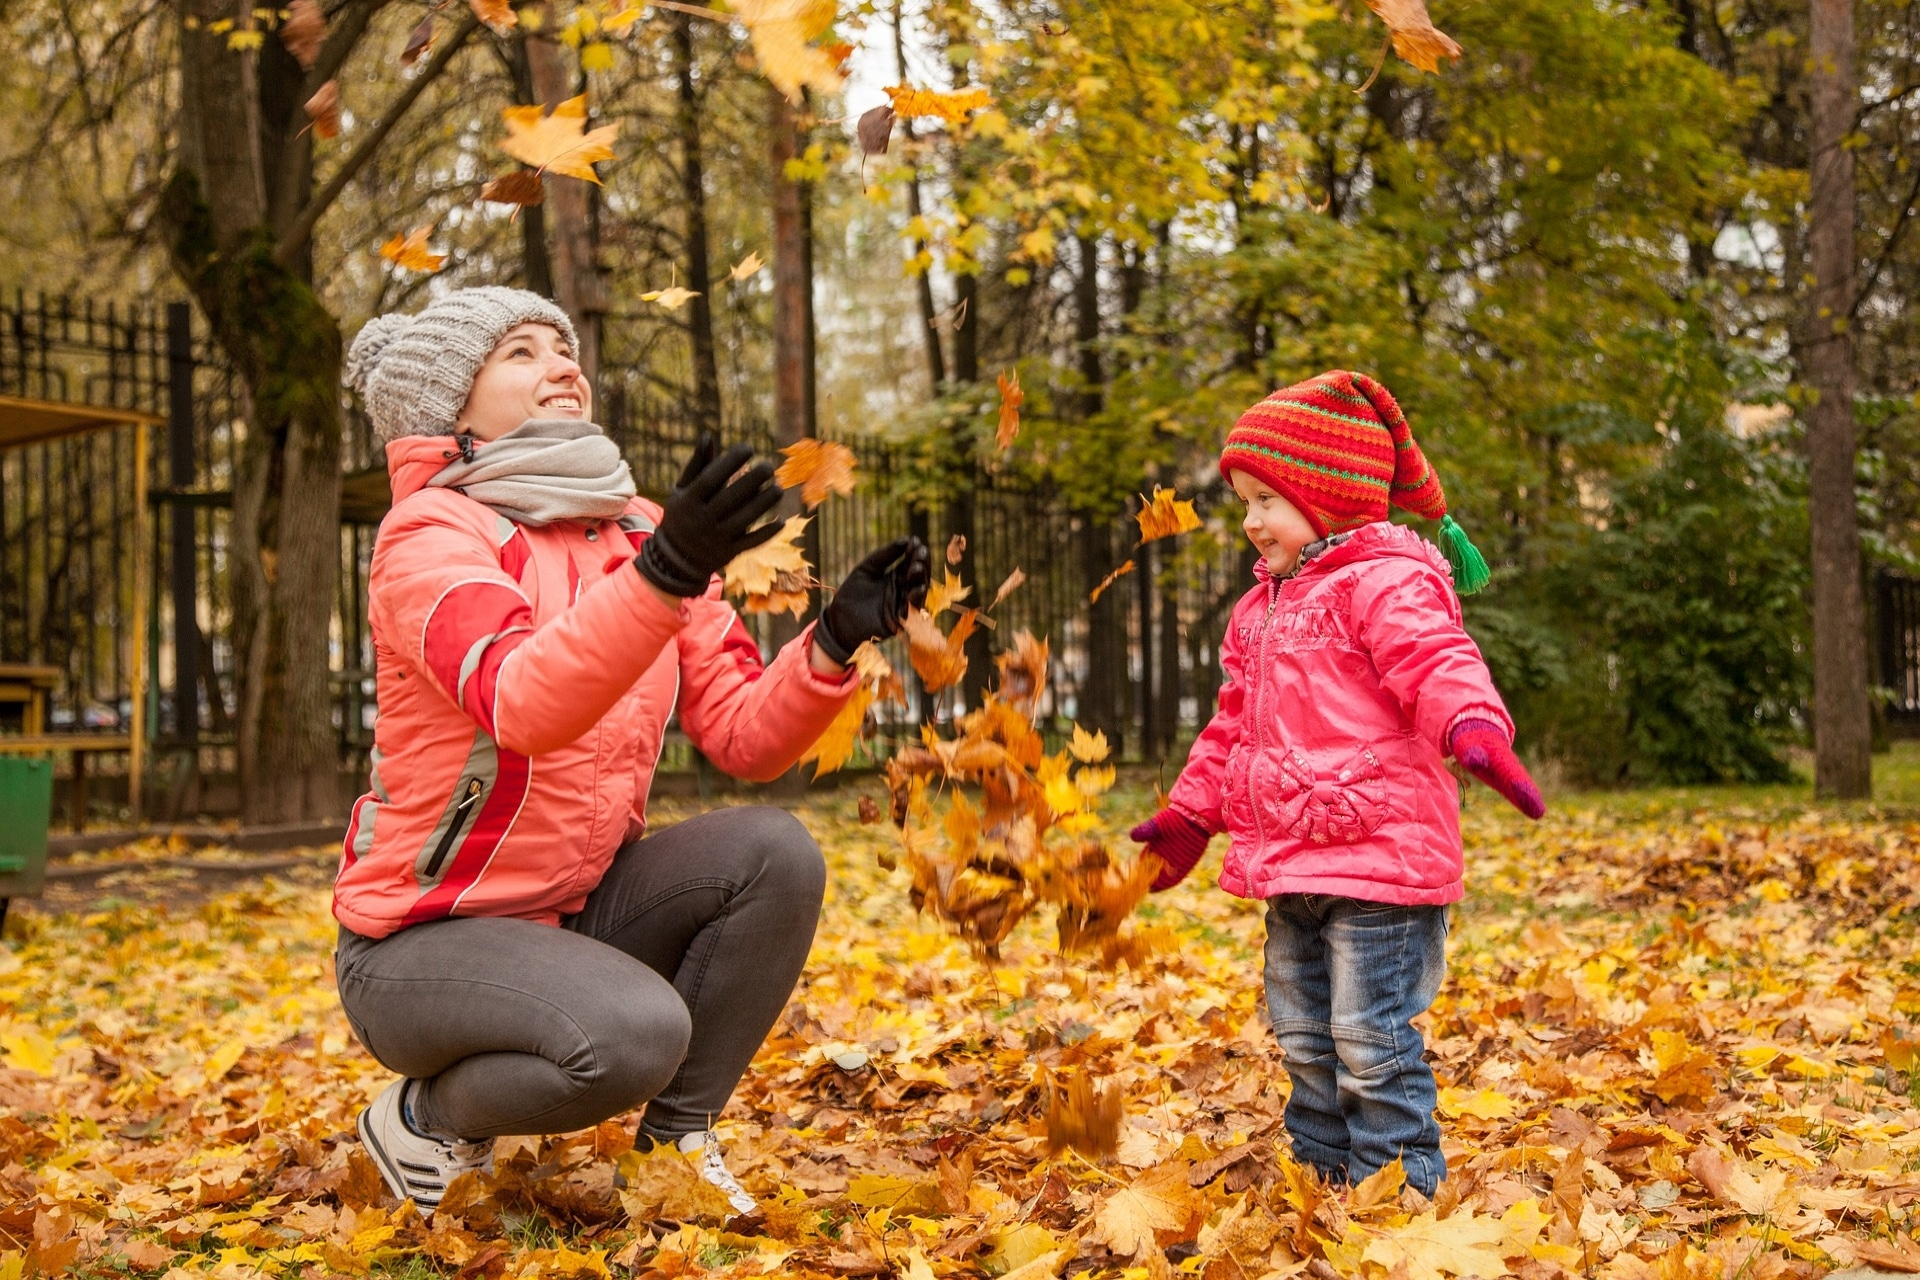 mom and little girl play in the fall leaves